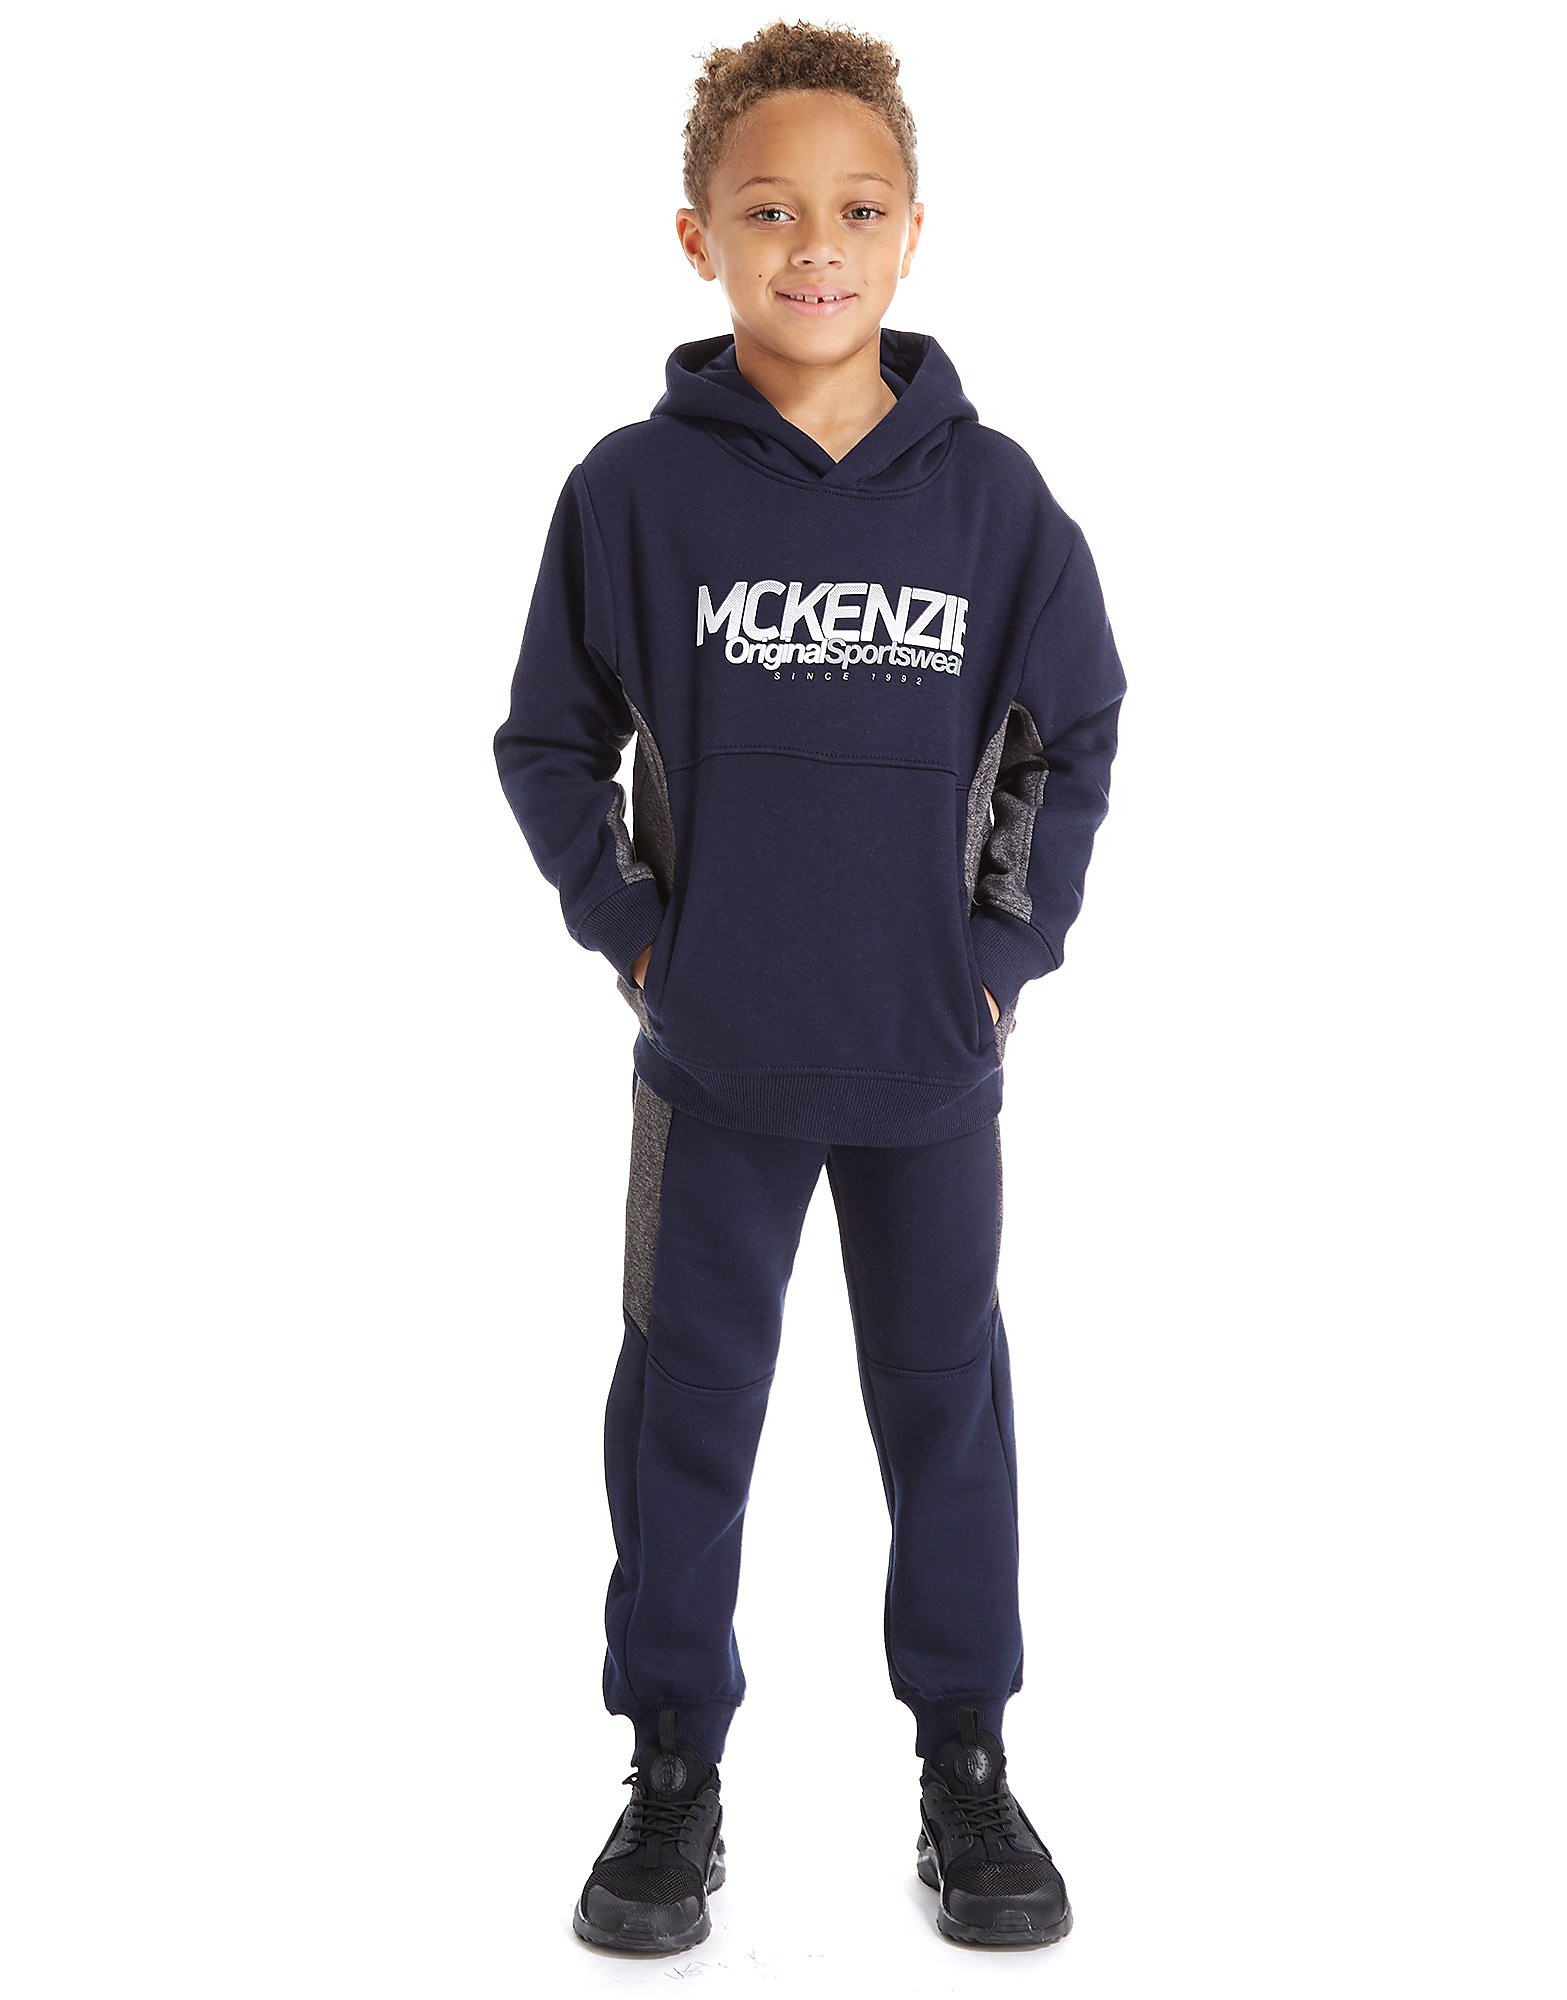 McKenzie Hopper Fleece Suit